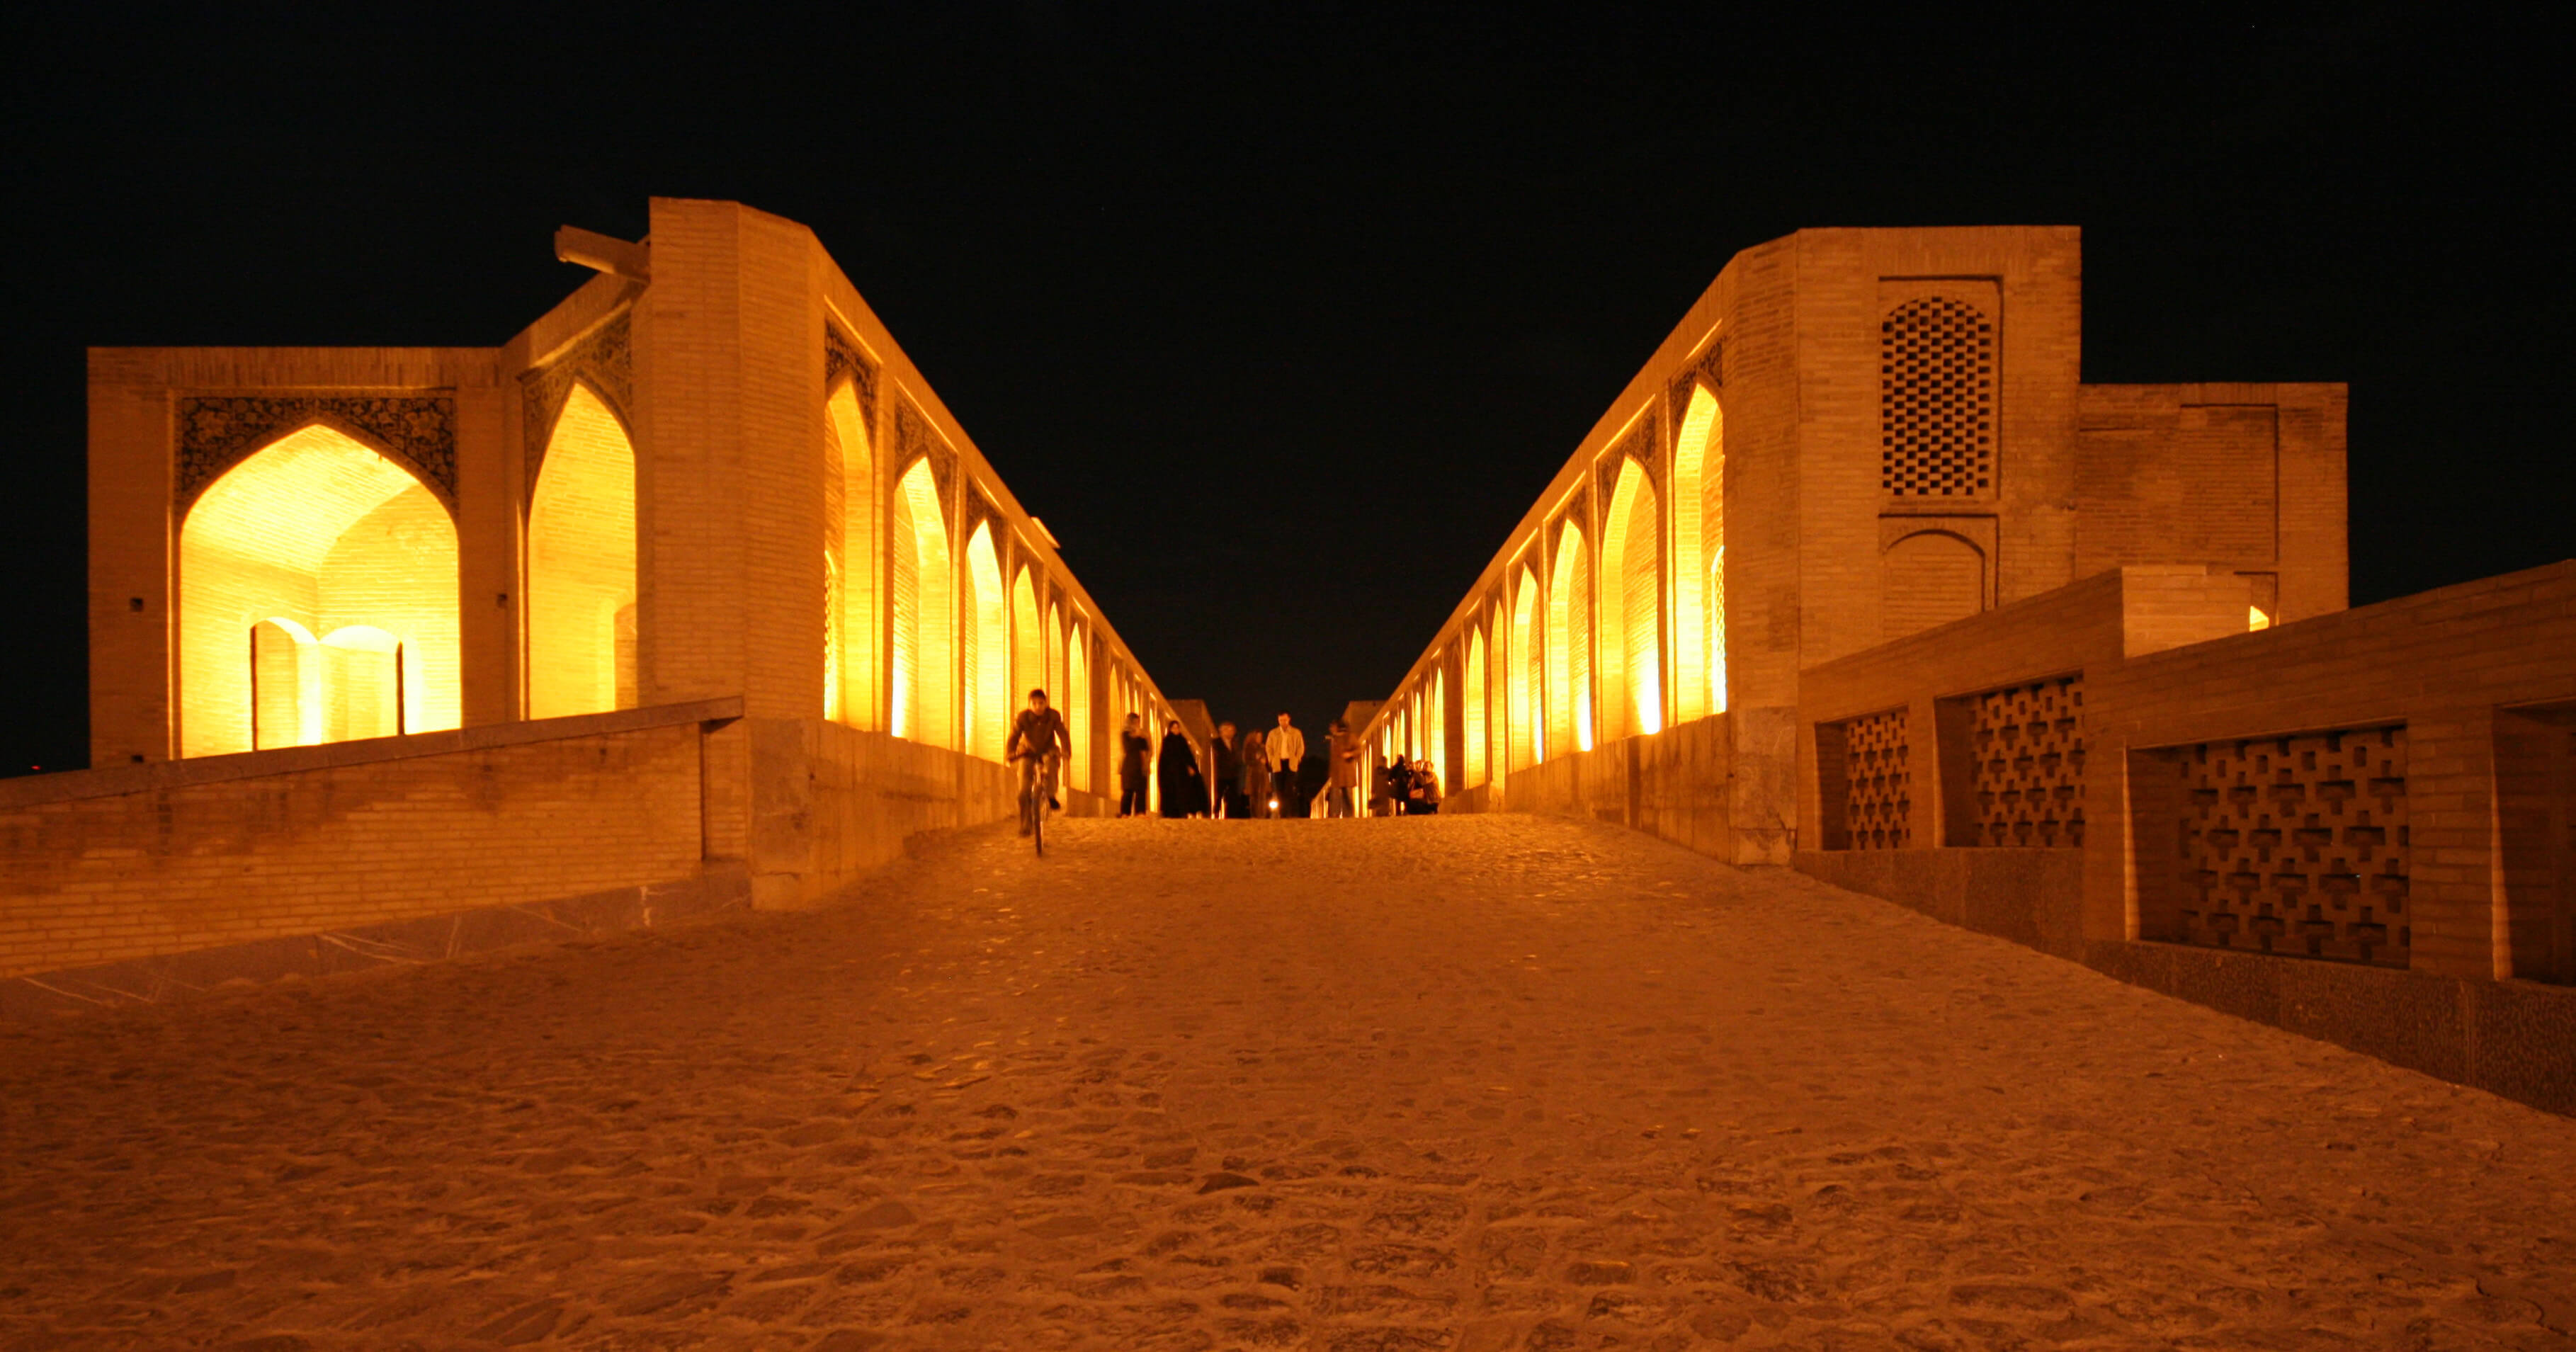 The Allahverdi Khan Bridge in Isfahan, Iran. Source: Bastian / Flickr